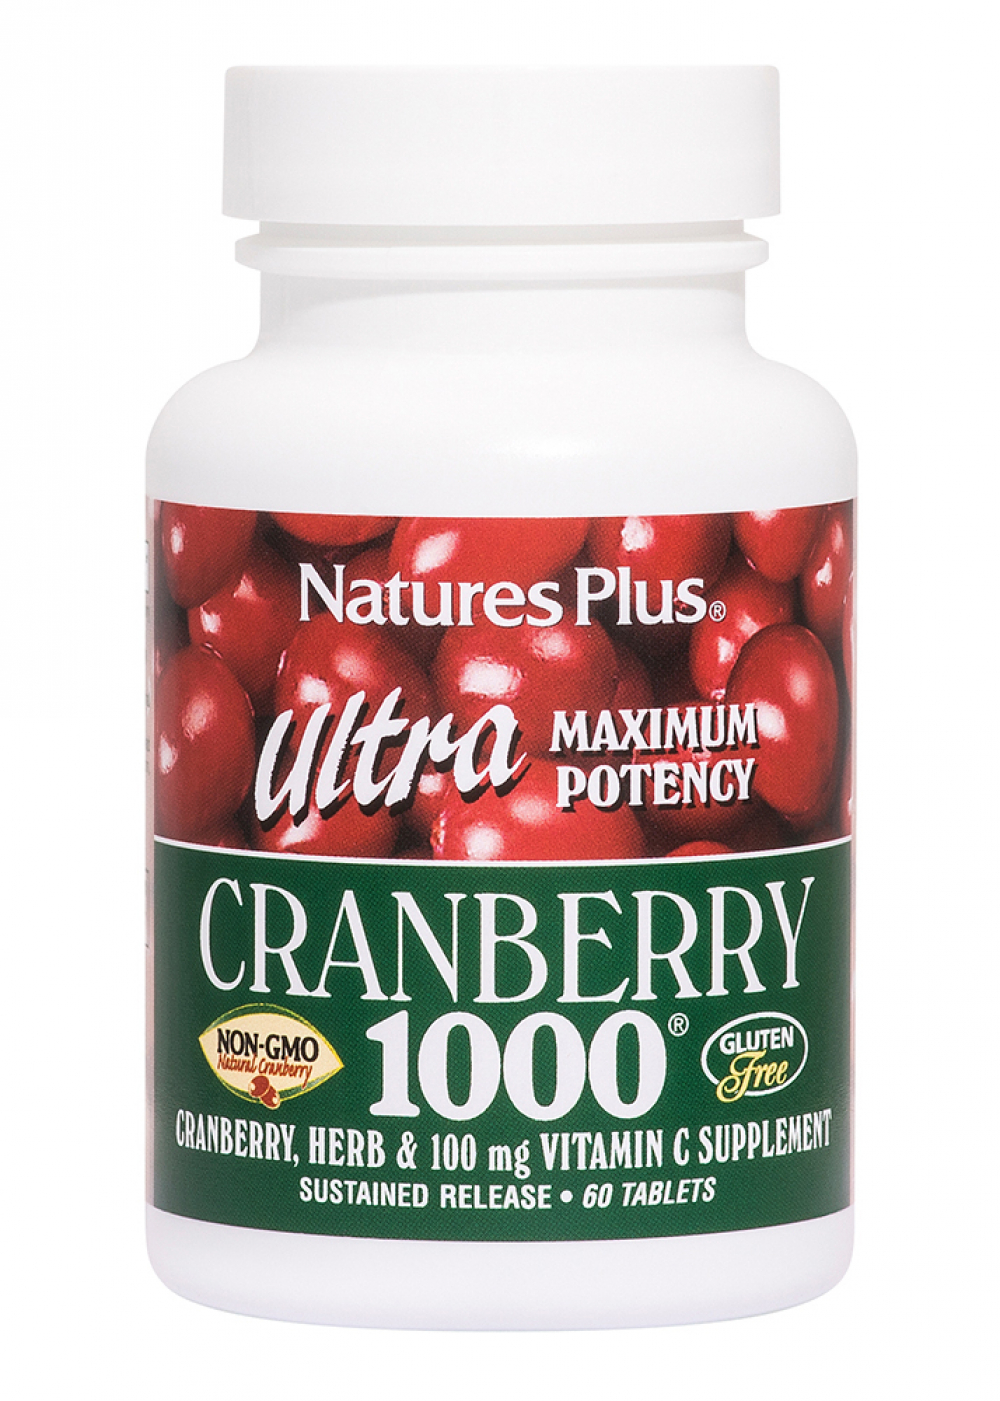 Natures Plus Ultra Cranberry 1000® Sustained Release 60 Tabletten (92,9g)